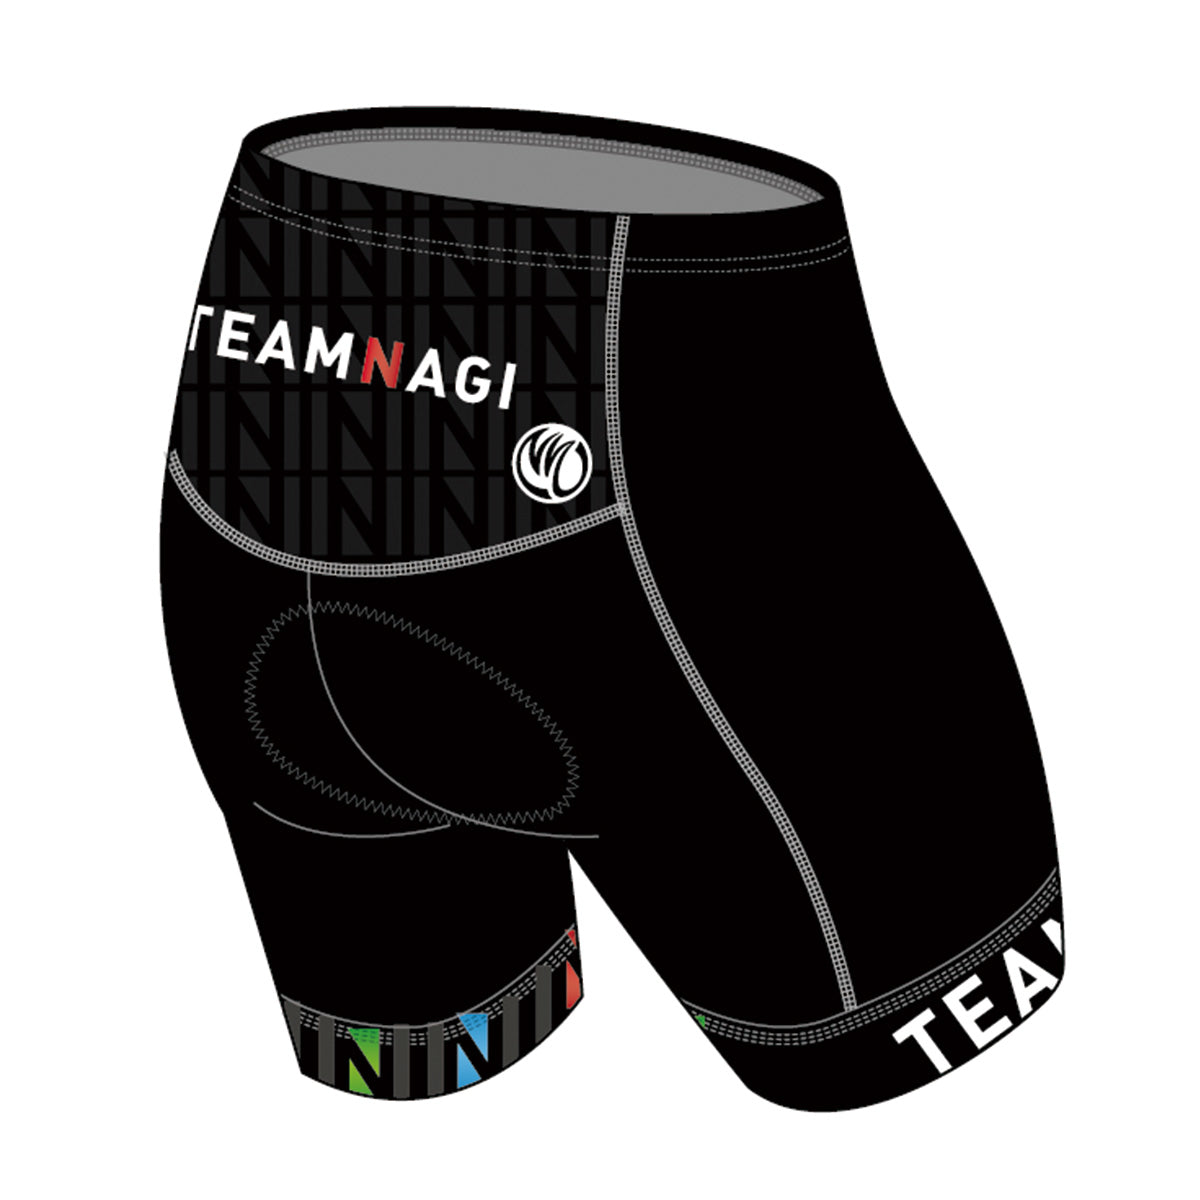 Team Nagi BLACK GOLD Tri Shorts